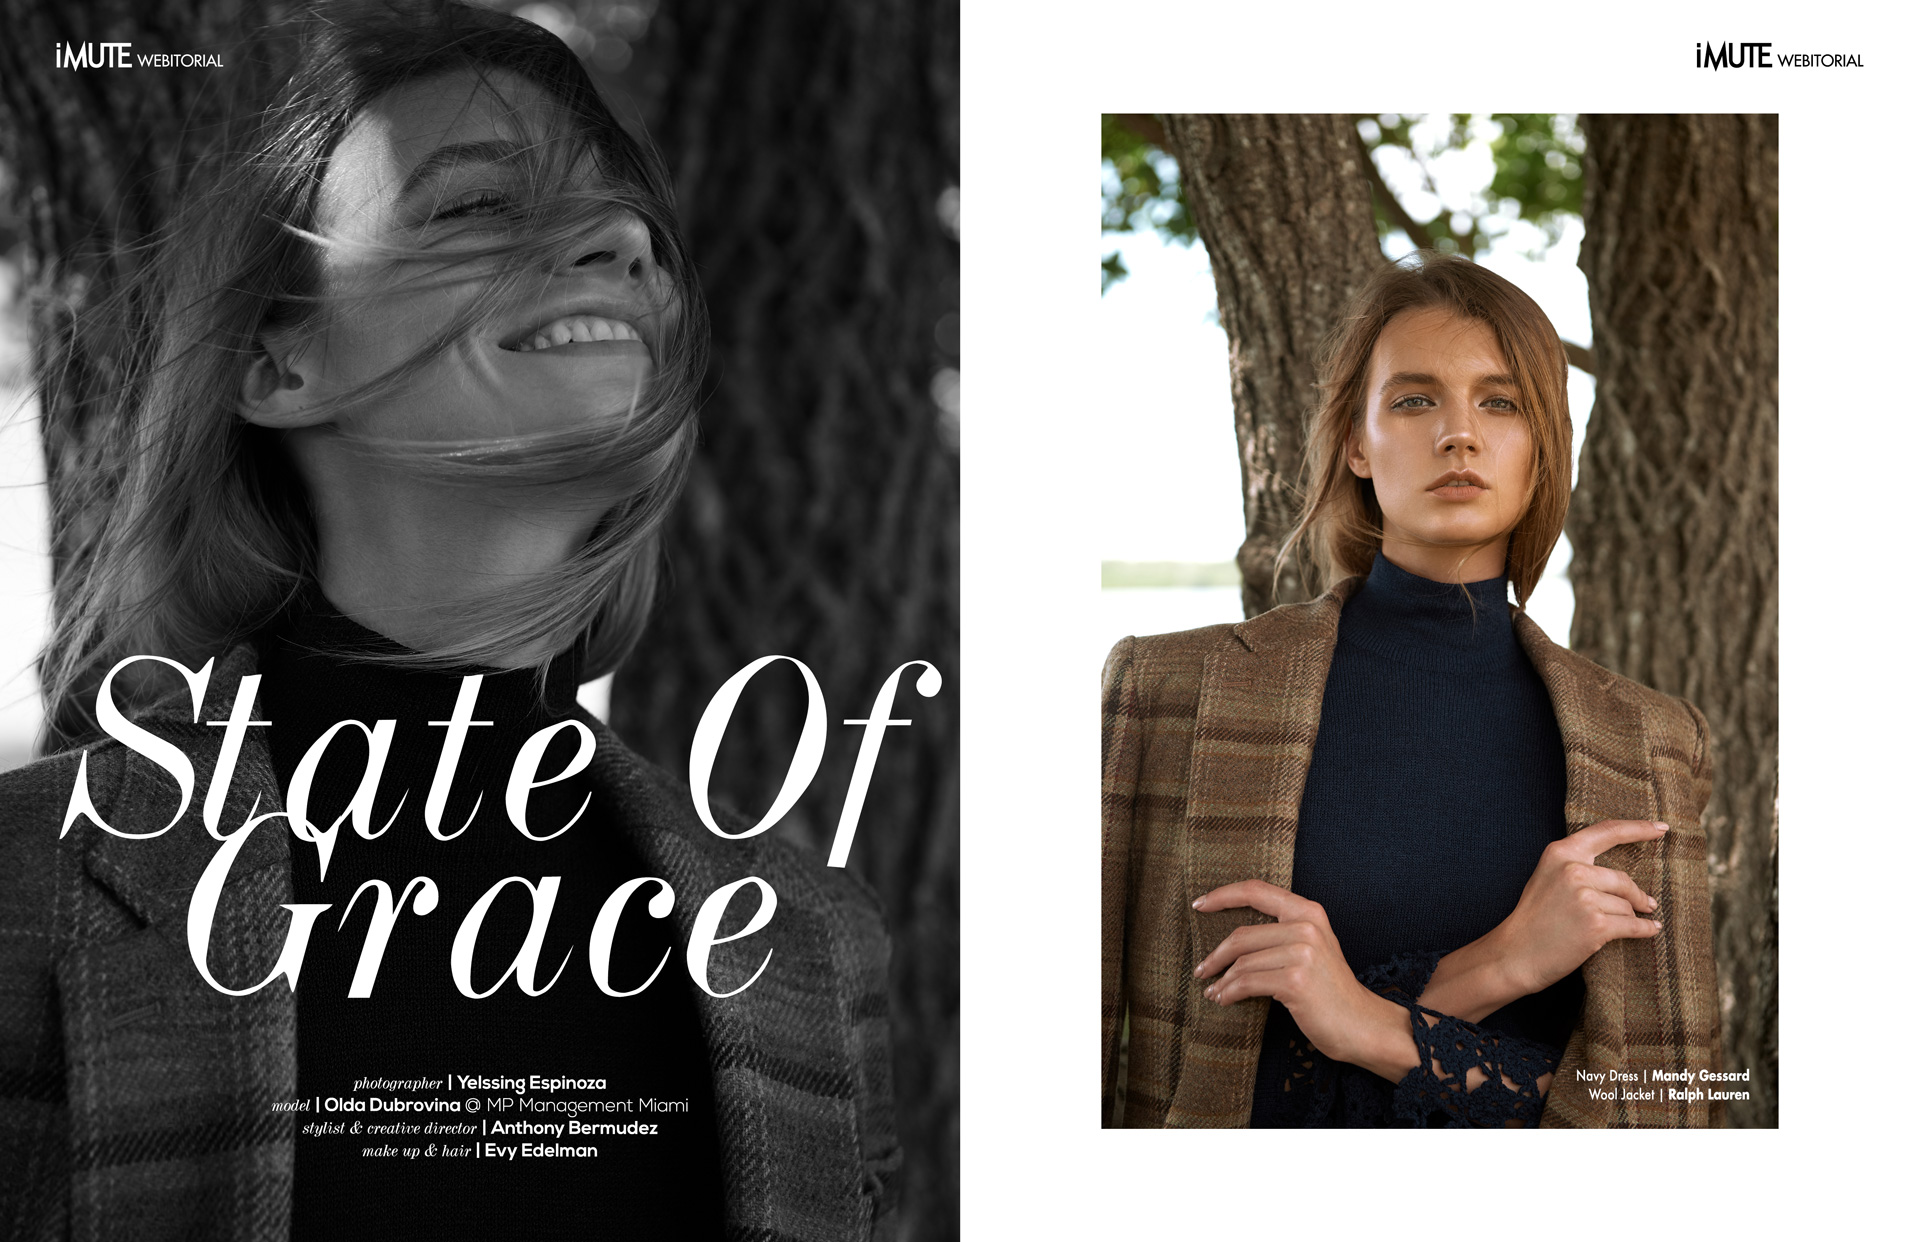 State Of Grace webitorial for iMute Magazine Photographer|Yelssing Espinoza Model| Olda Dubrovina @MP Management Miami Stylist & Creative Director|Anthony Bermudez @ Artists By Timothy Priano Makeup & Hair|Evy Edelman